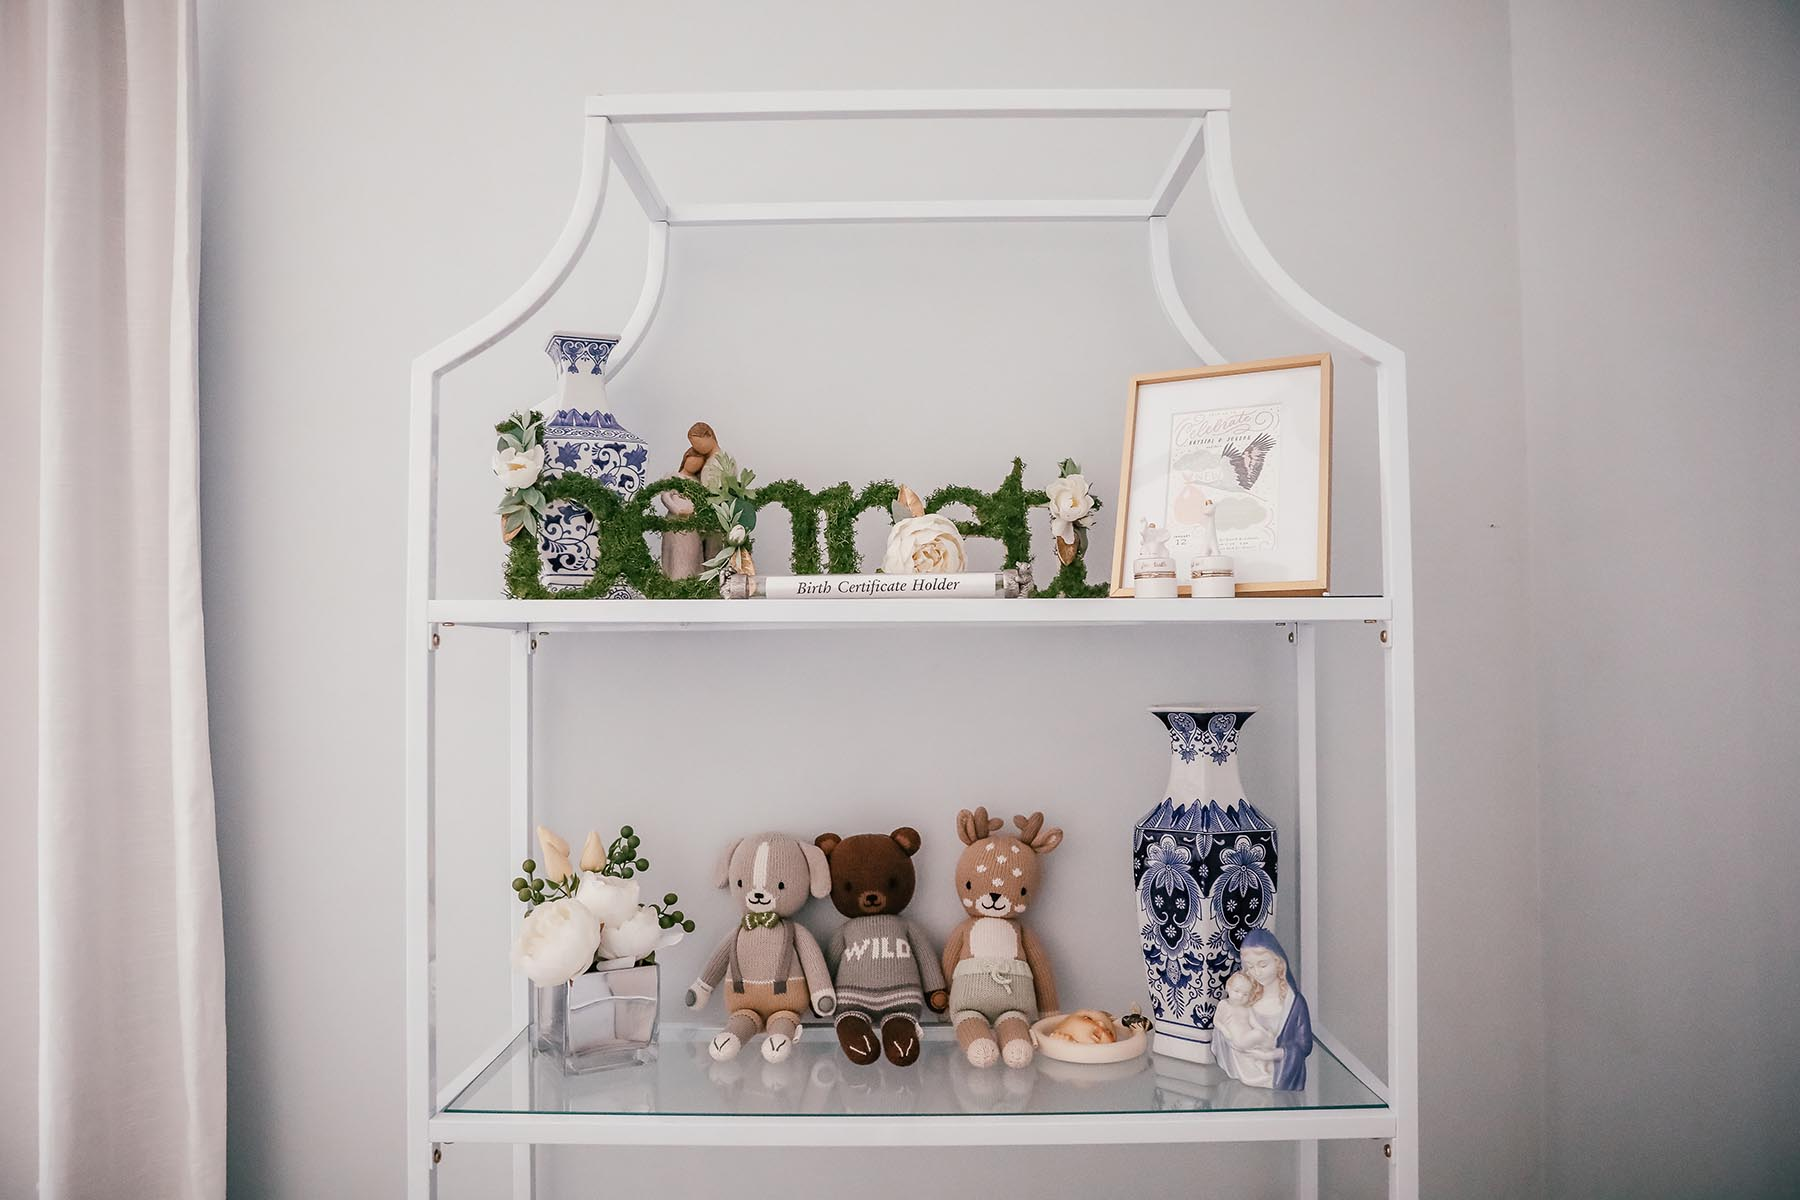 EVERYTHING You Need For The Nursery